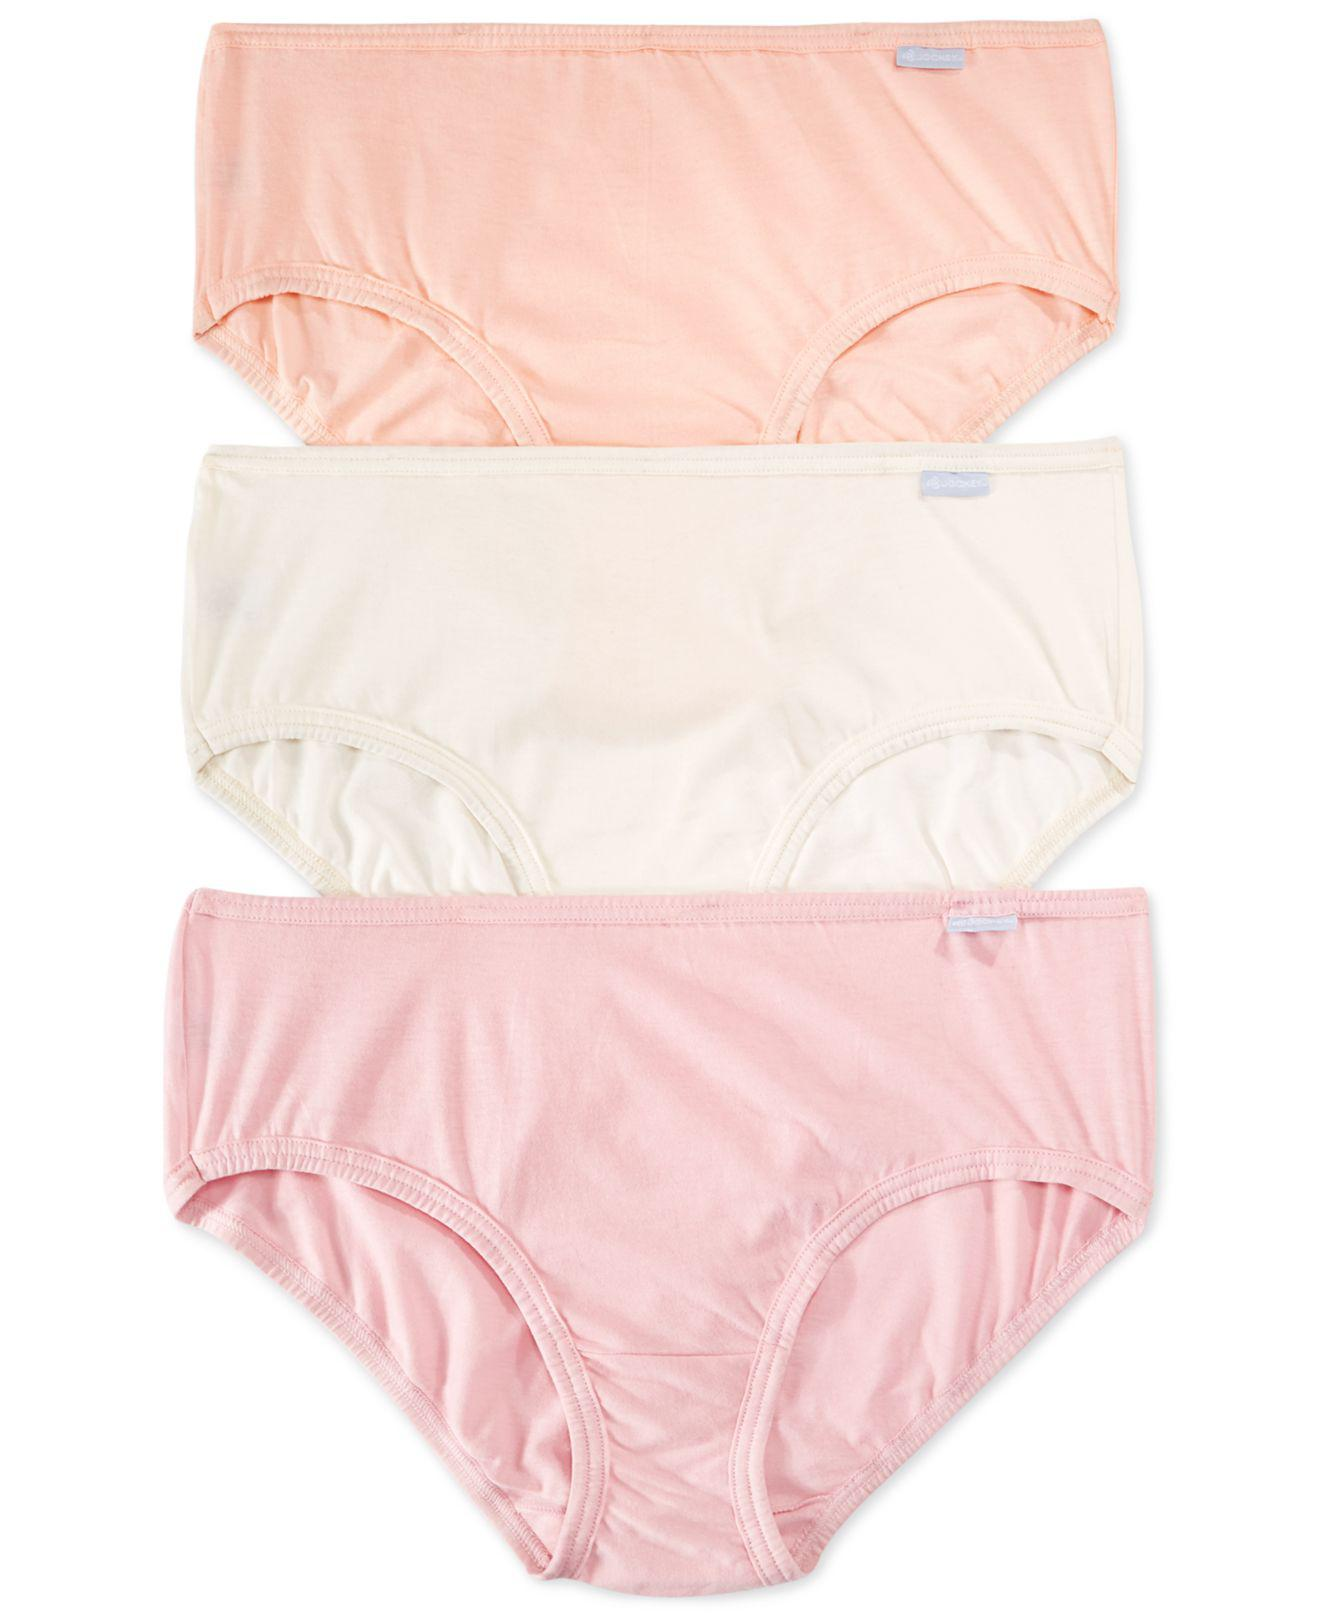 b39e271cd71 Lyst - Jockey Plus Size Elance Cotton Hipster 3 Pack 1482 in Pink